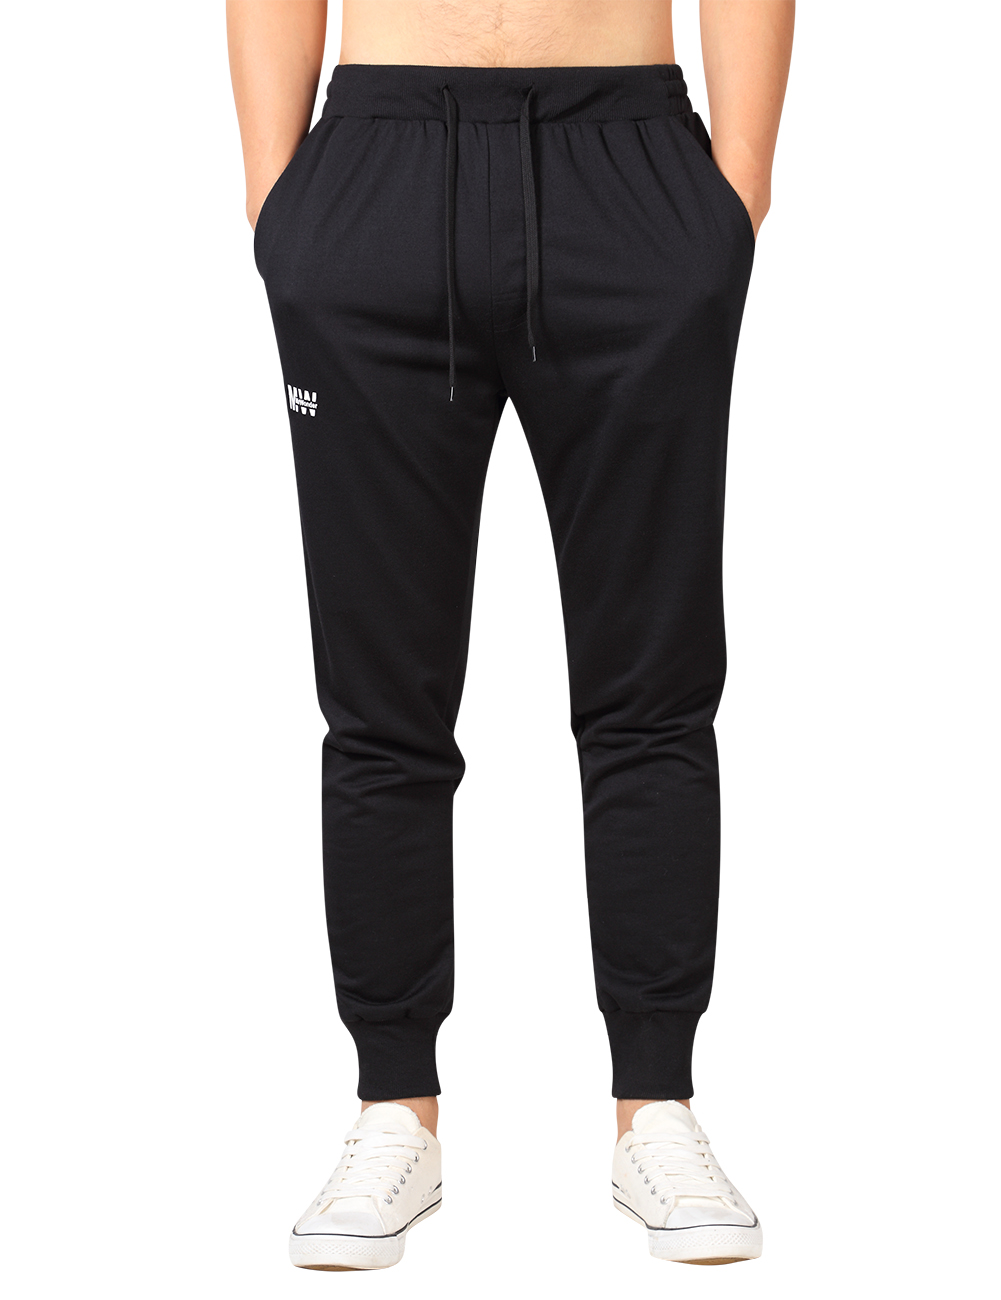 MrWonder Men's Casual Joggers Pants Fitness Running Trousers Slim Fit Bottoms Sweatpants with Pockets Black_XL